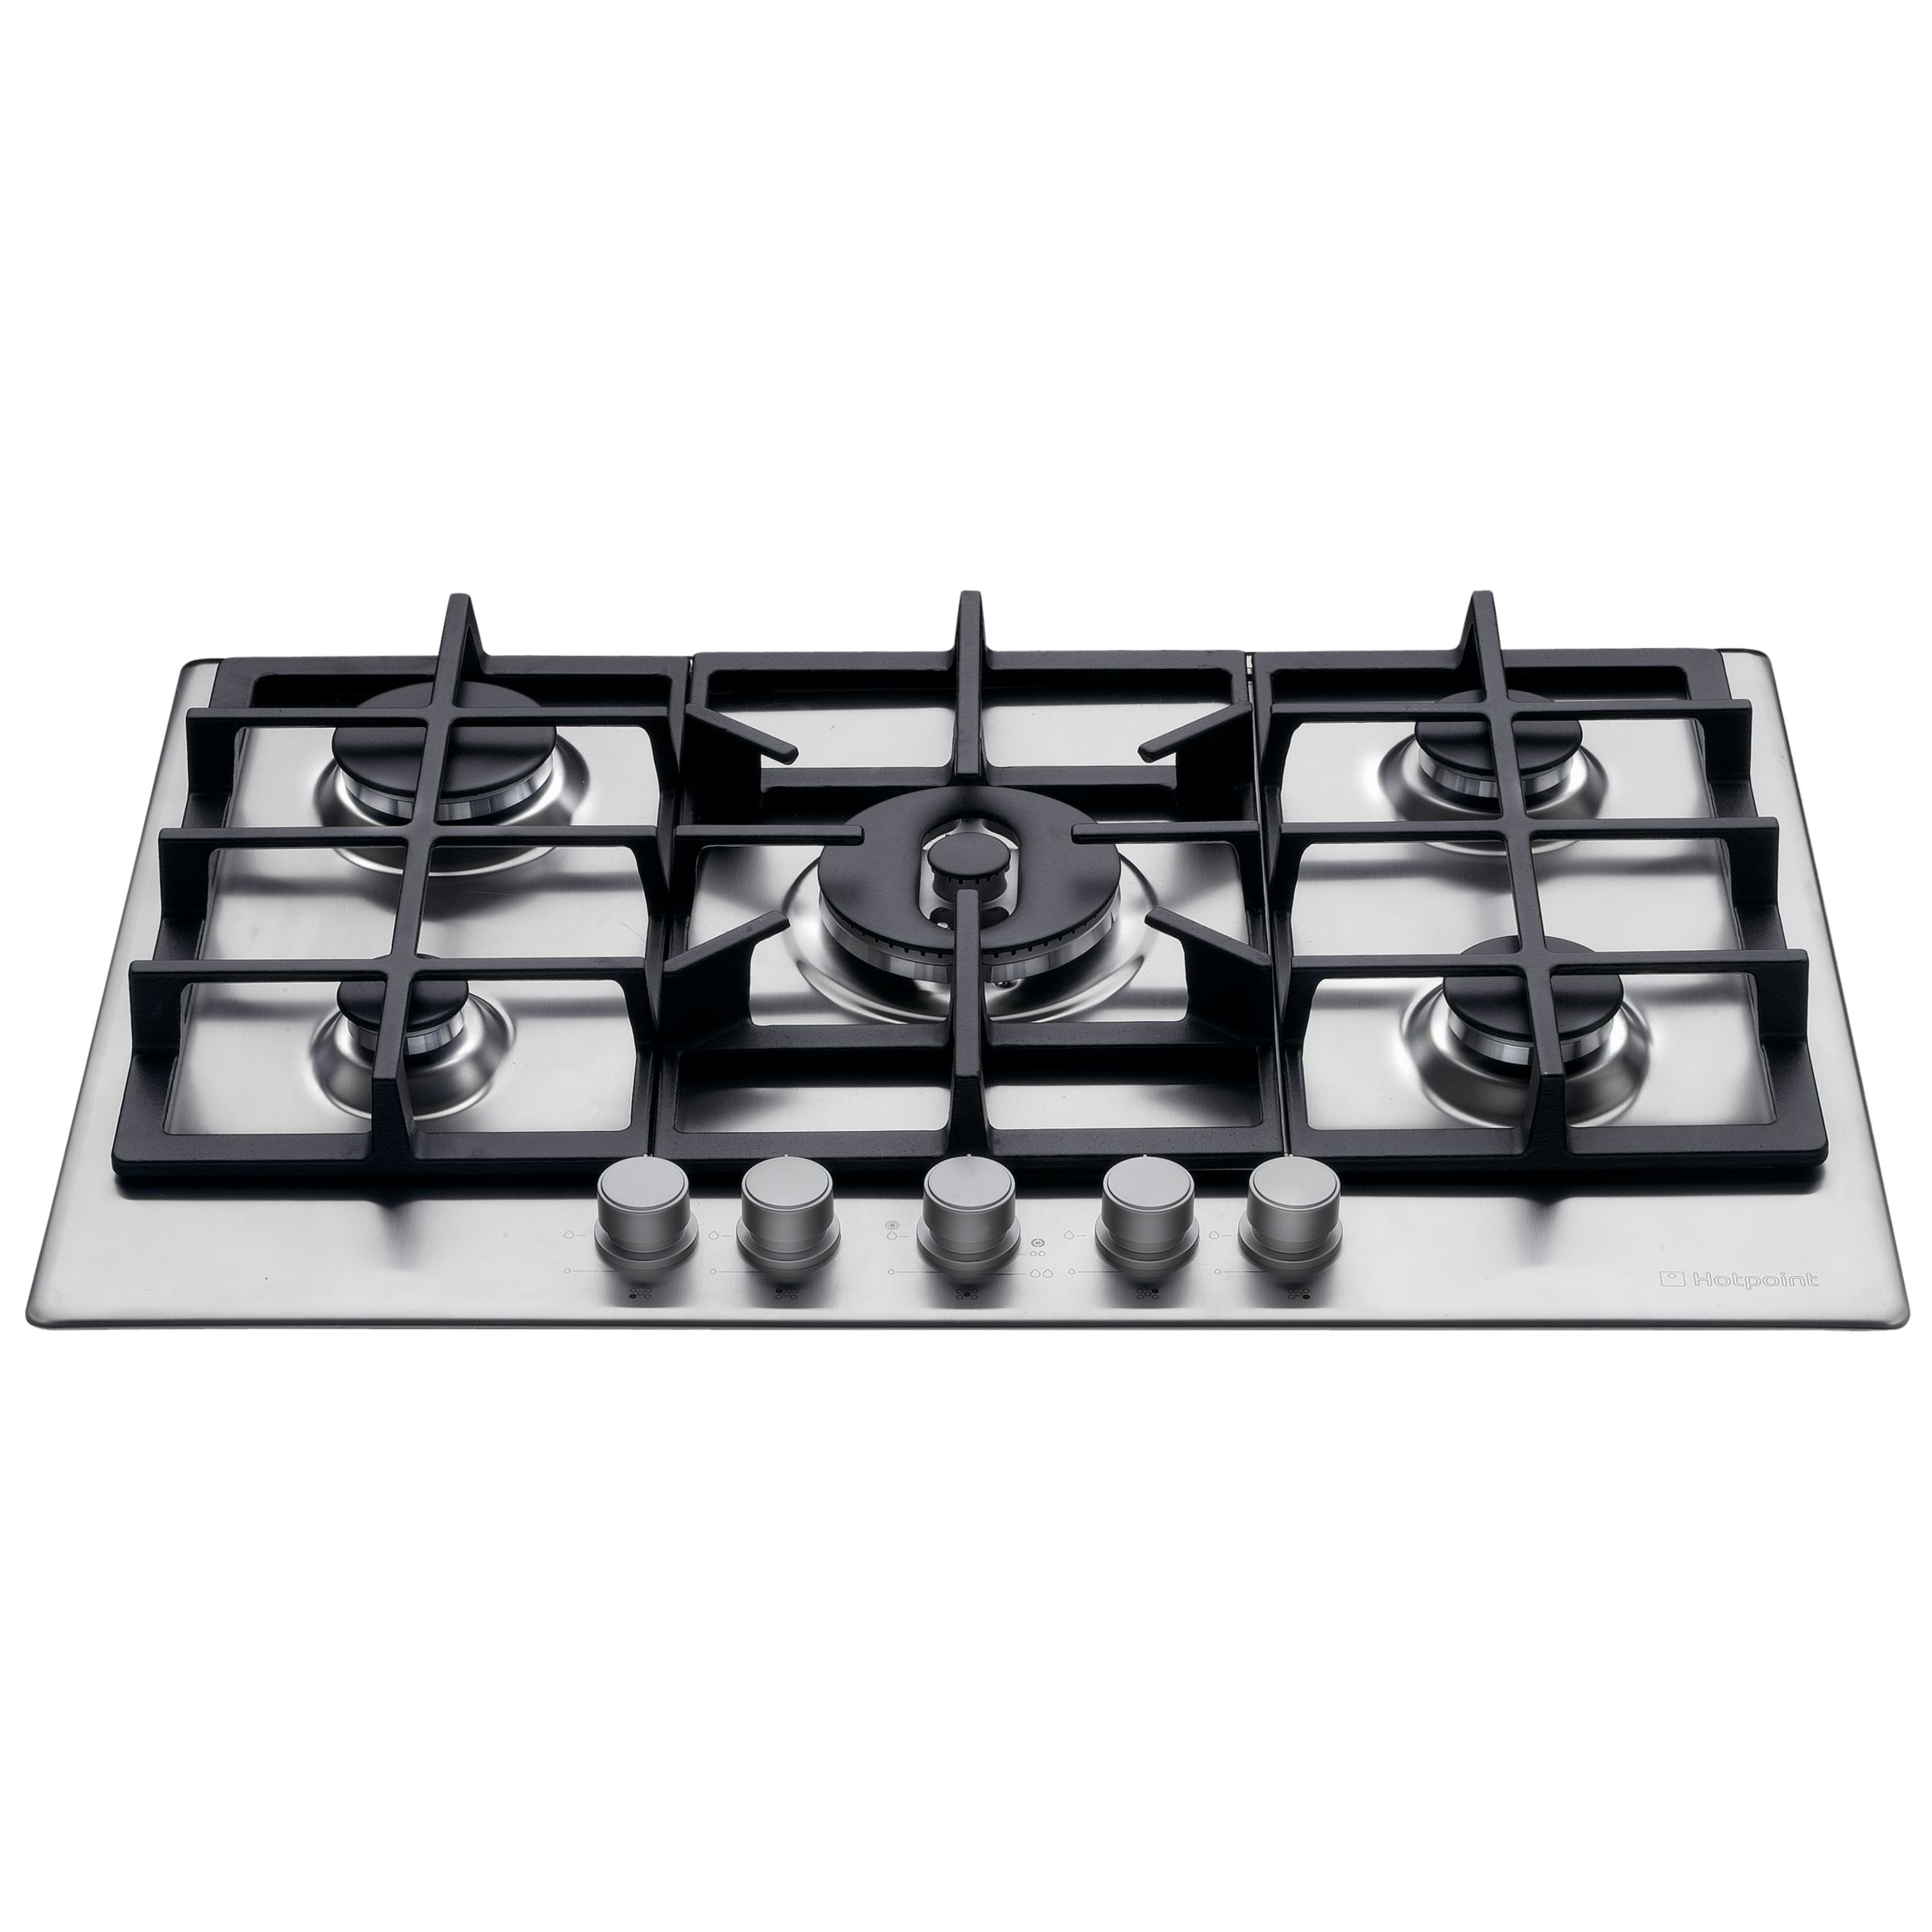 Hotpoint GE750DX Gas Hob, Stainless Steel at John Lewis